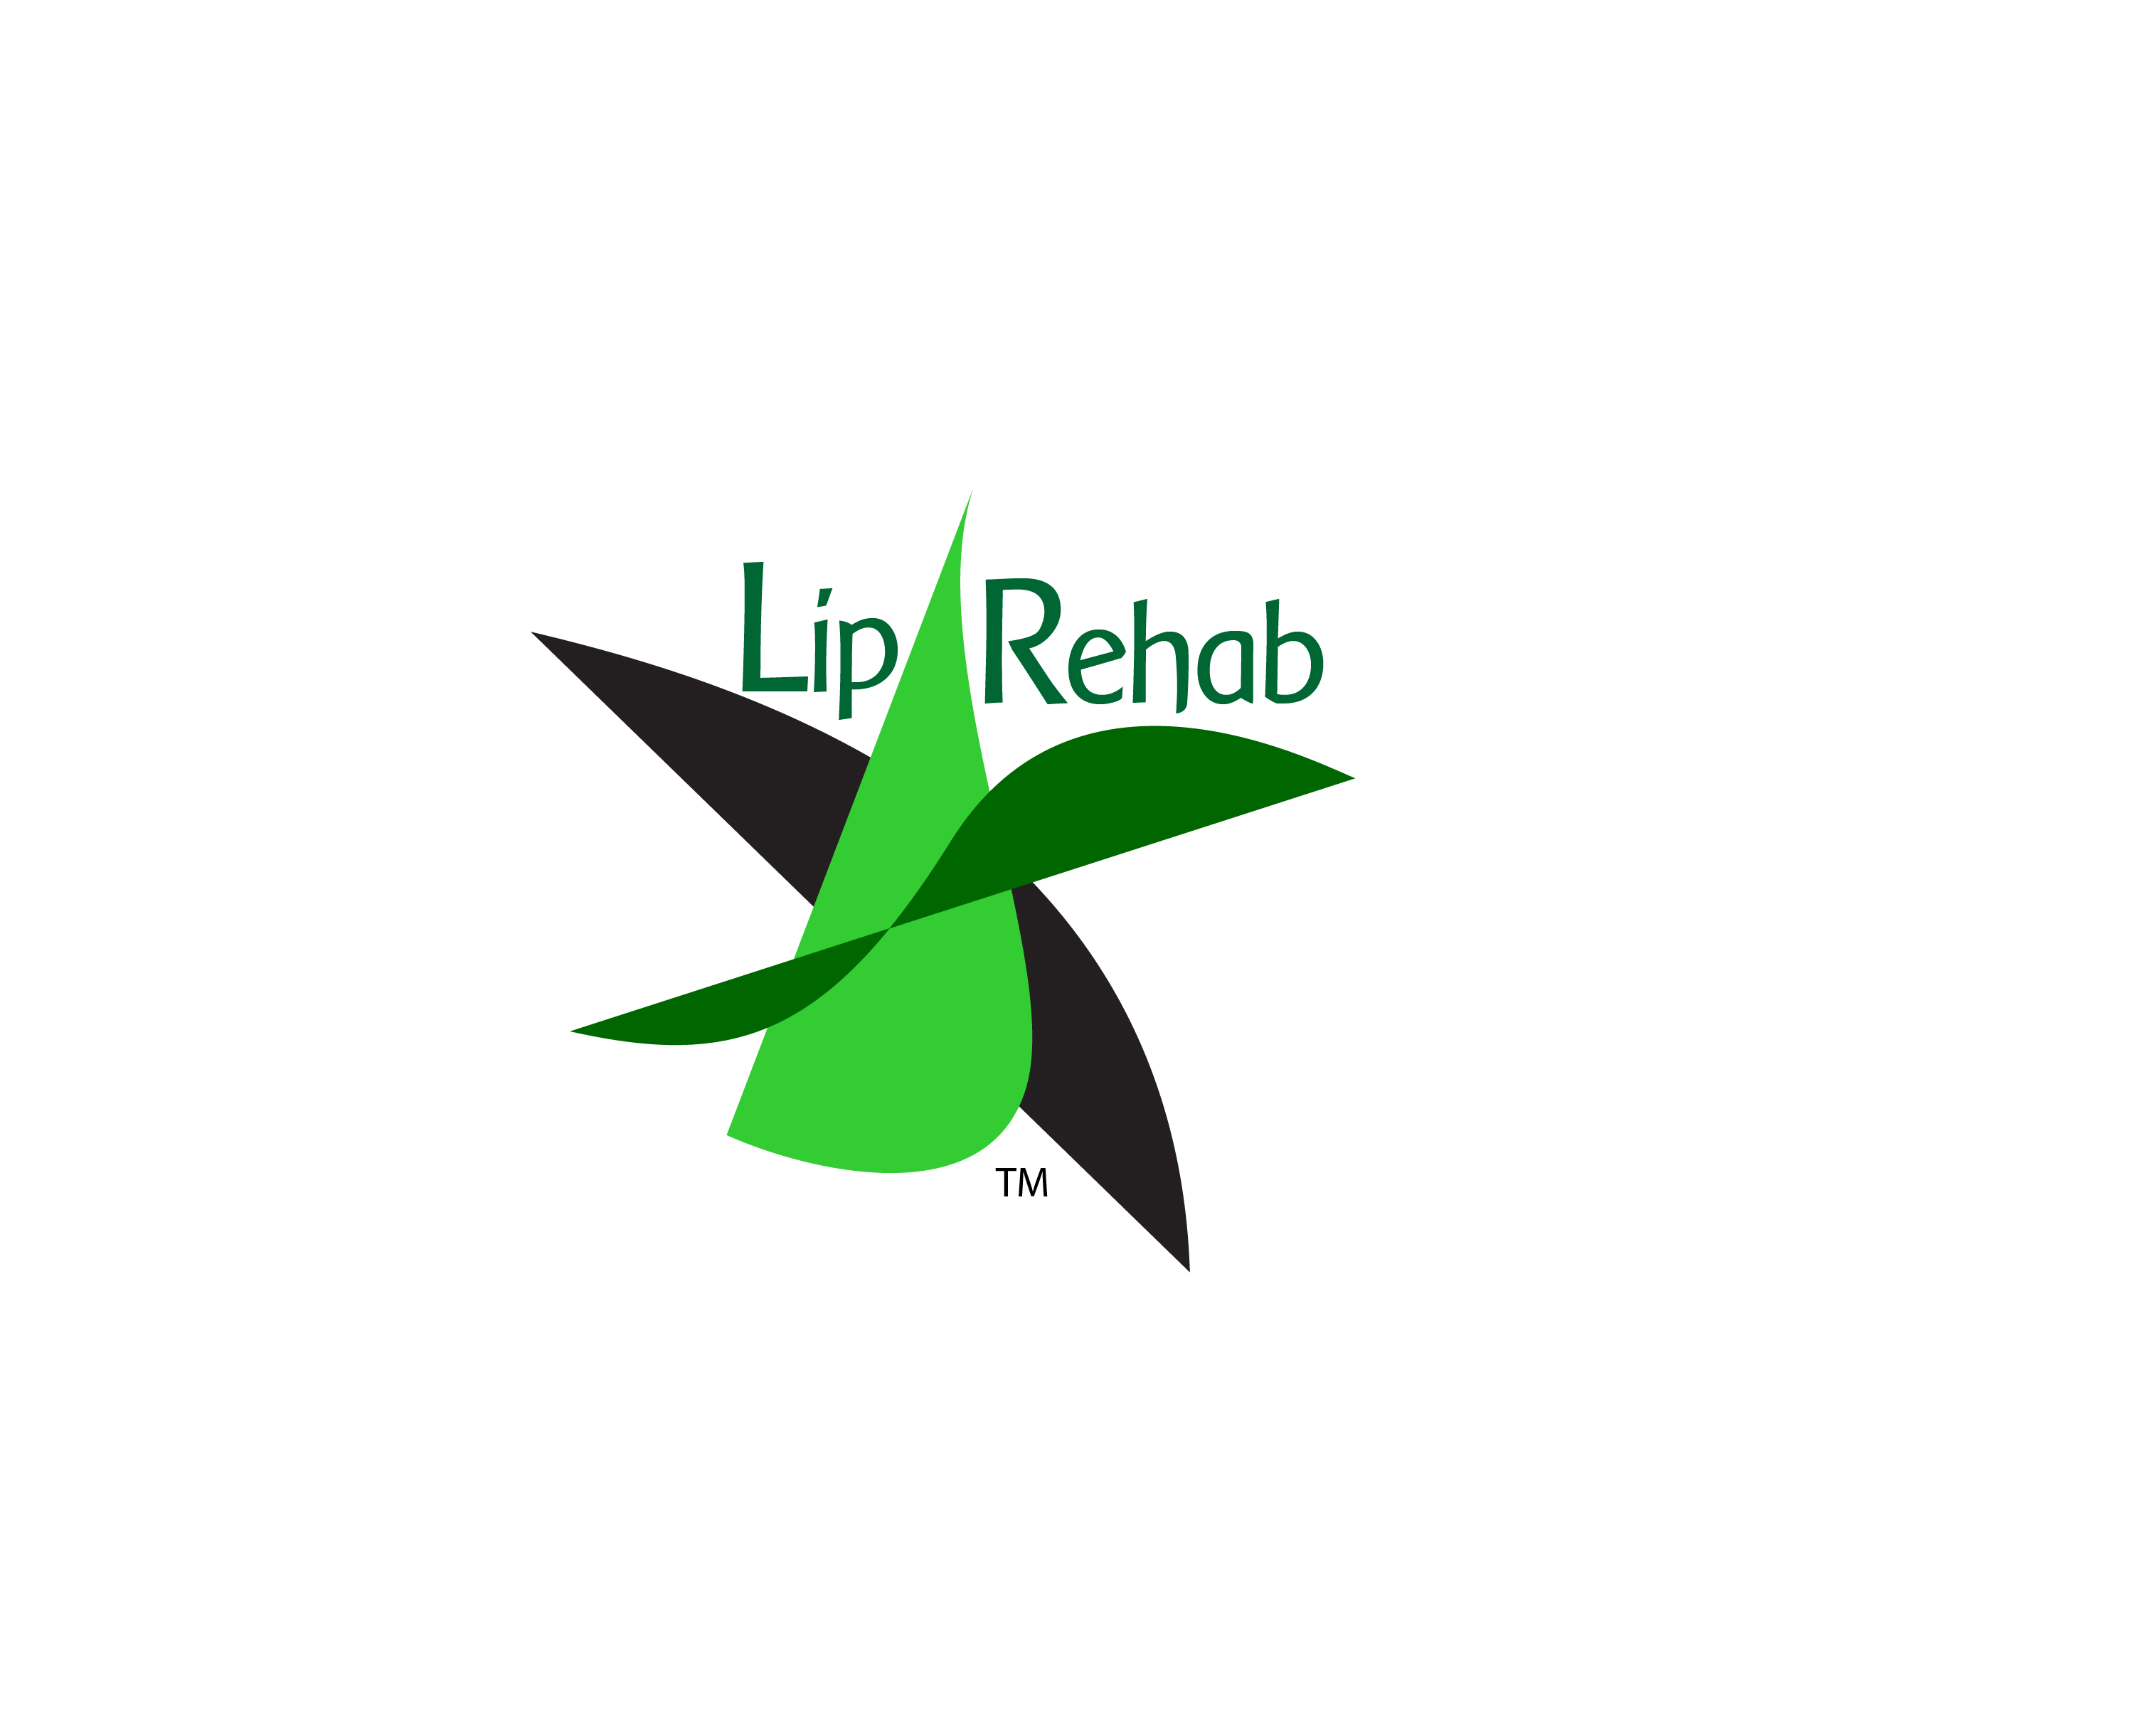 Logo Design by Nancy Grant - Entry No. 231 in the Logo Design Contest Creative Logo Design for Lip Rehab.